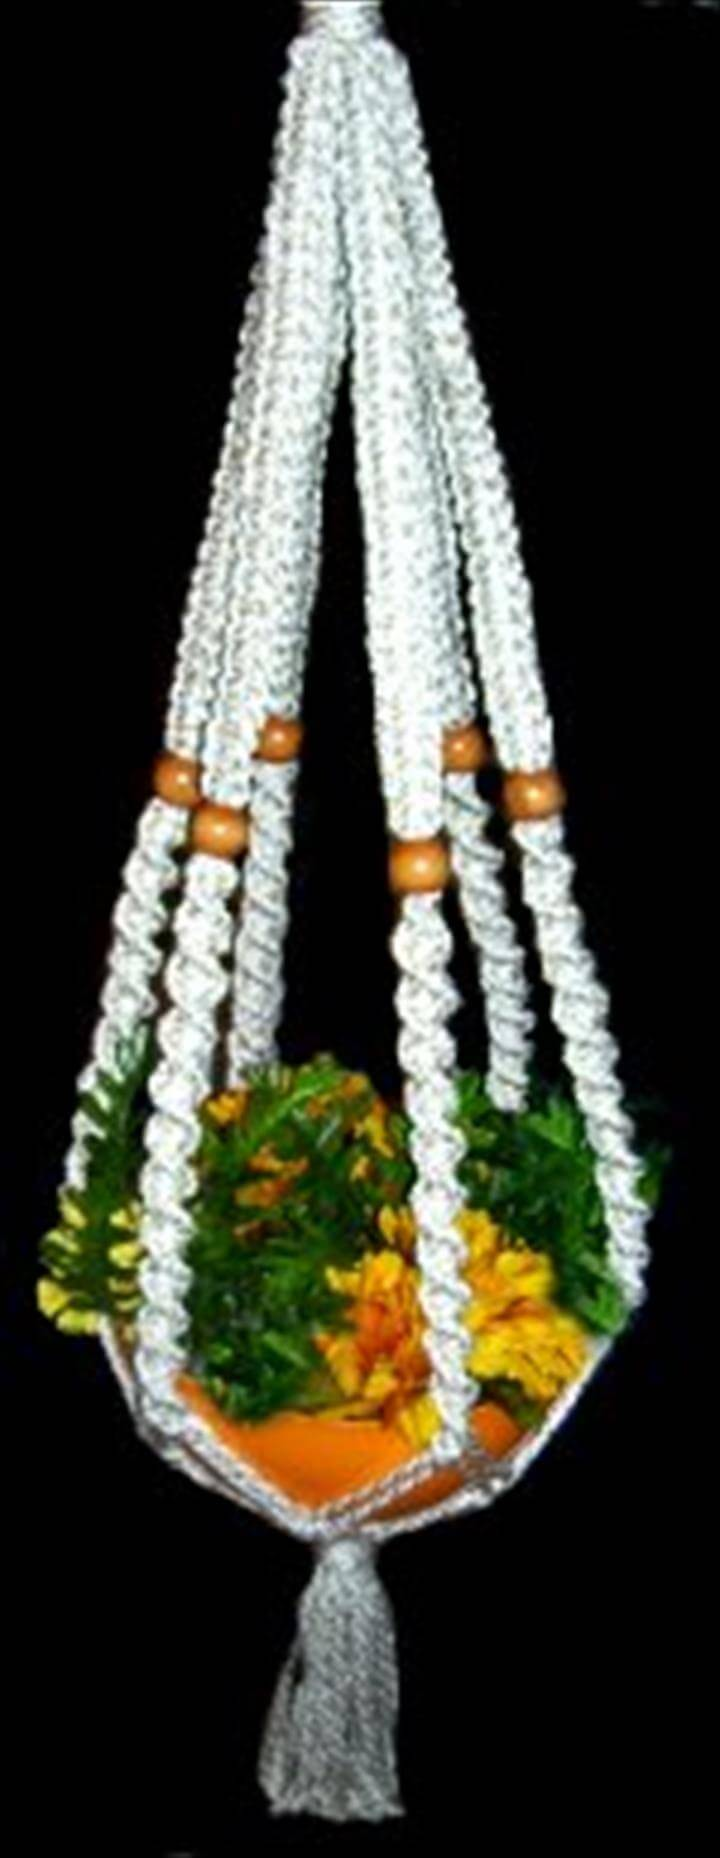 macrame stitches 25 diy plant hangers with tutorials diy crafts 9521